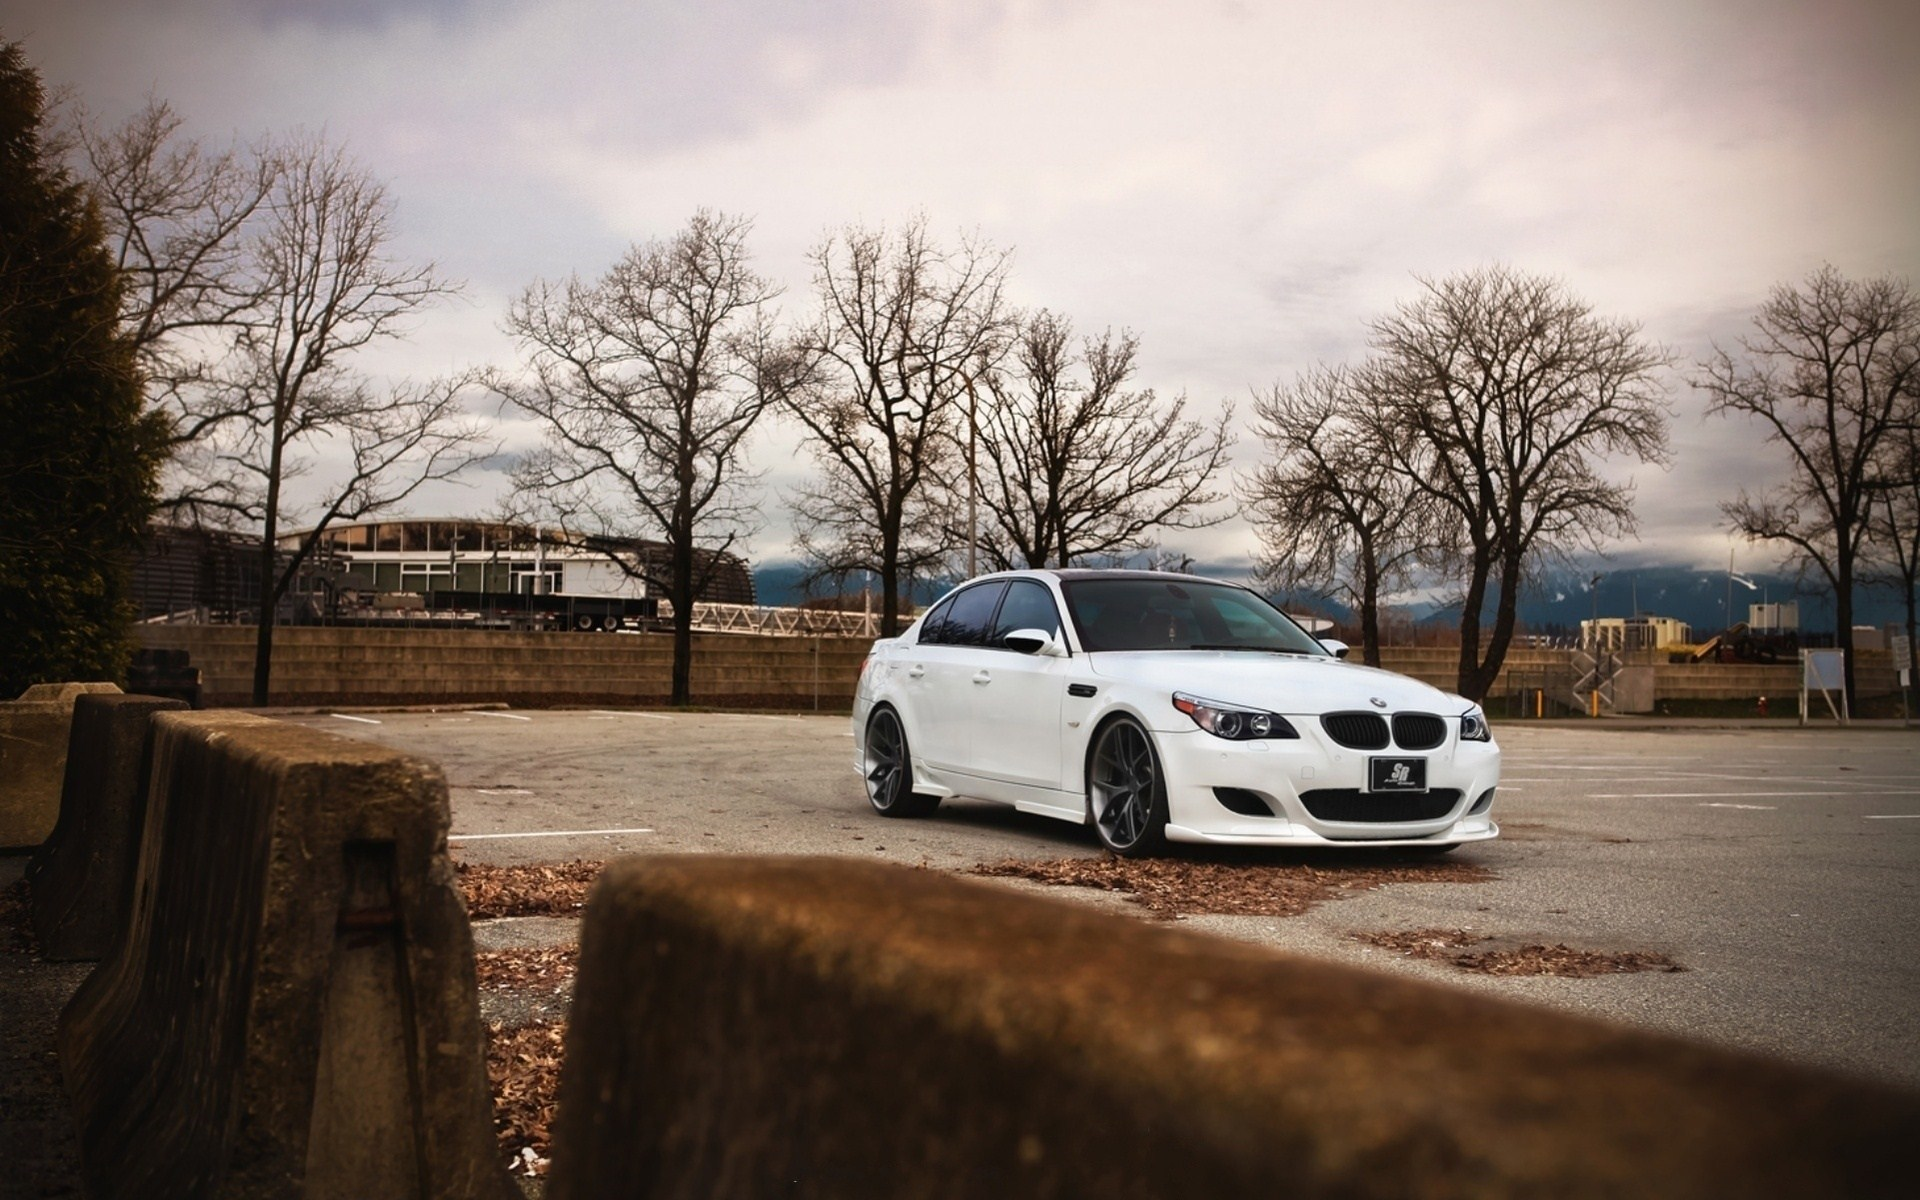 Bmw E60 M5 Wallpaper   image 353 1920x1200